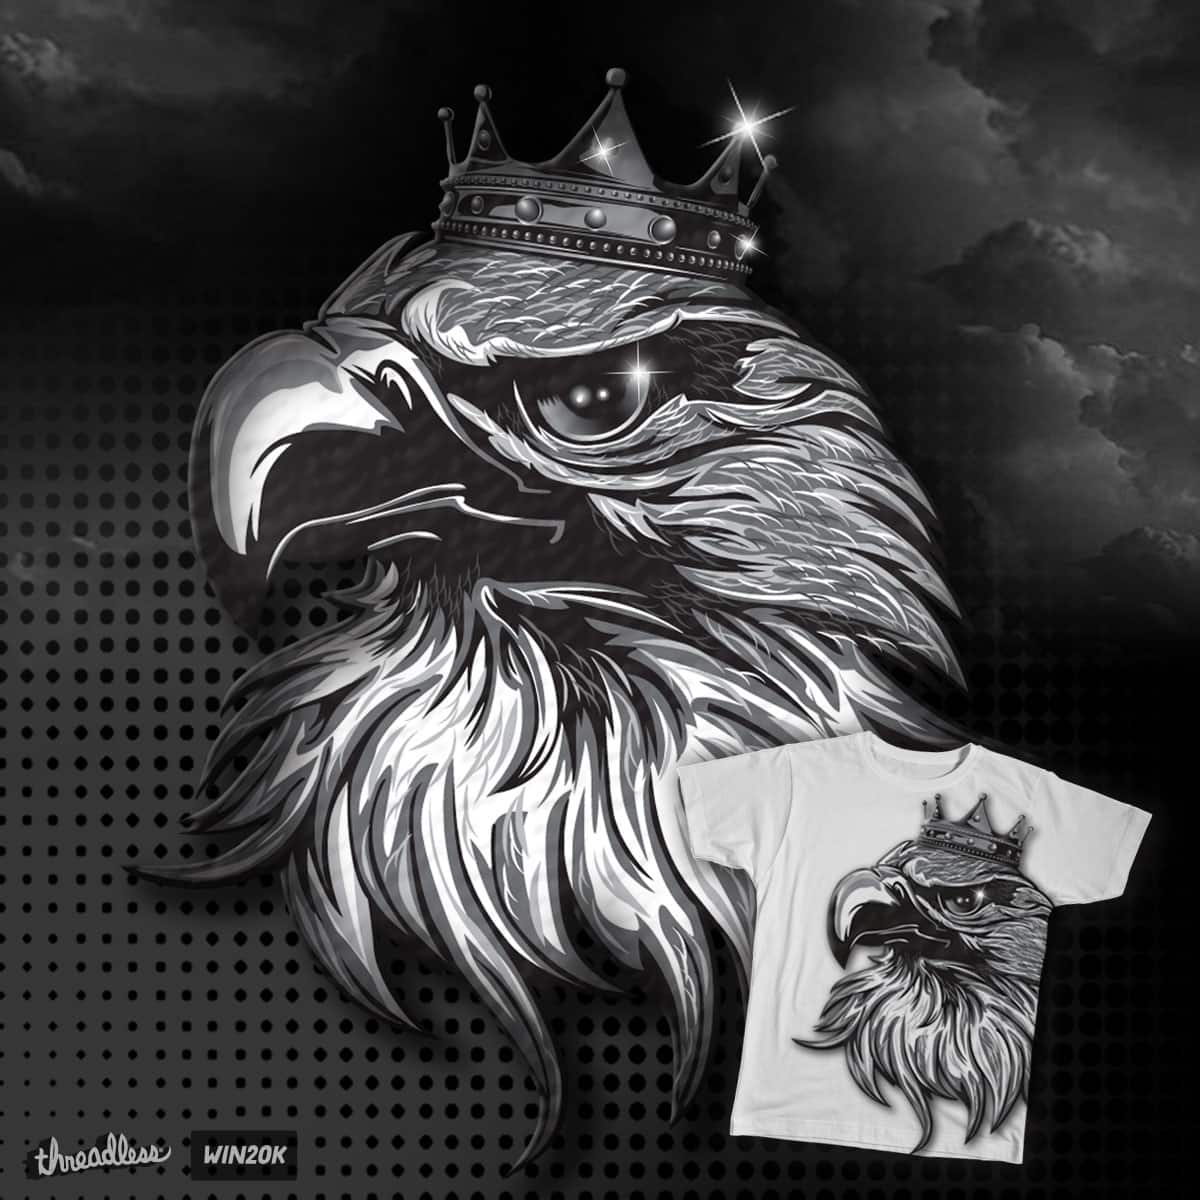 King Of The Skies by Khimlee on Threadless